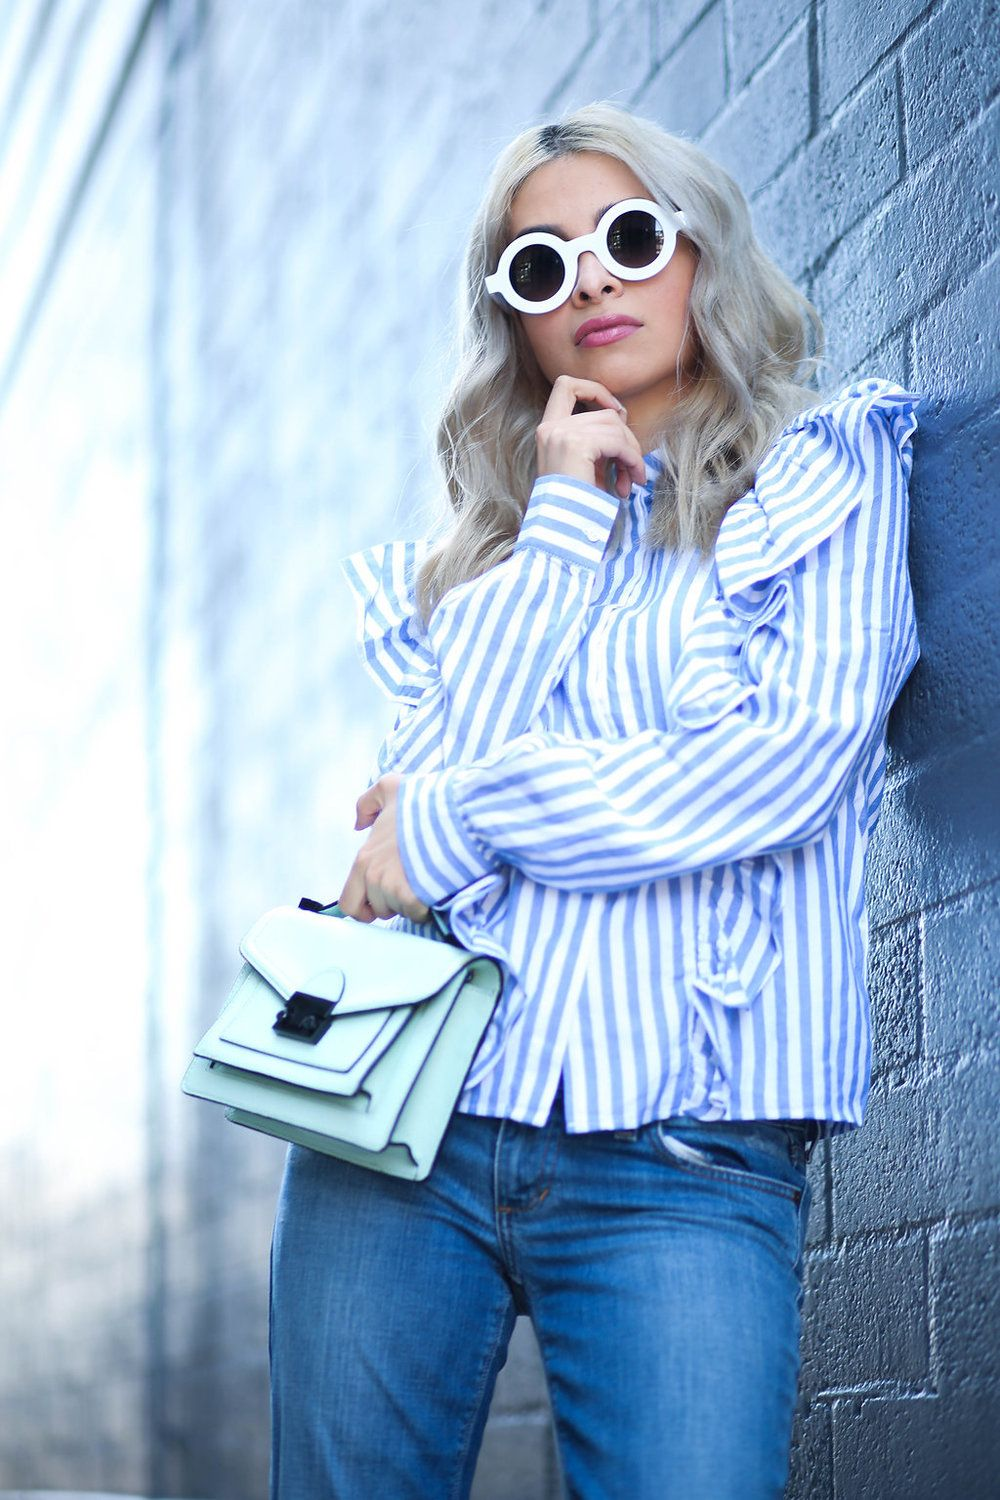 68e999ee424c7 Savvy Javvy  TRENDY BLOGGER WOMENS FASHION THICK ROUND SUNGLASSES 8980